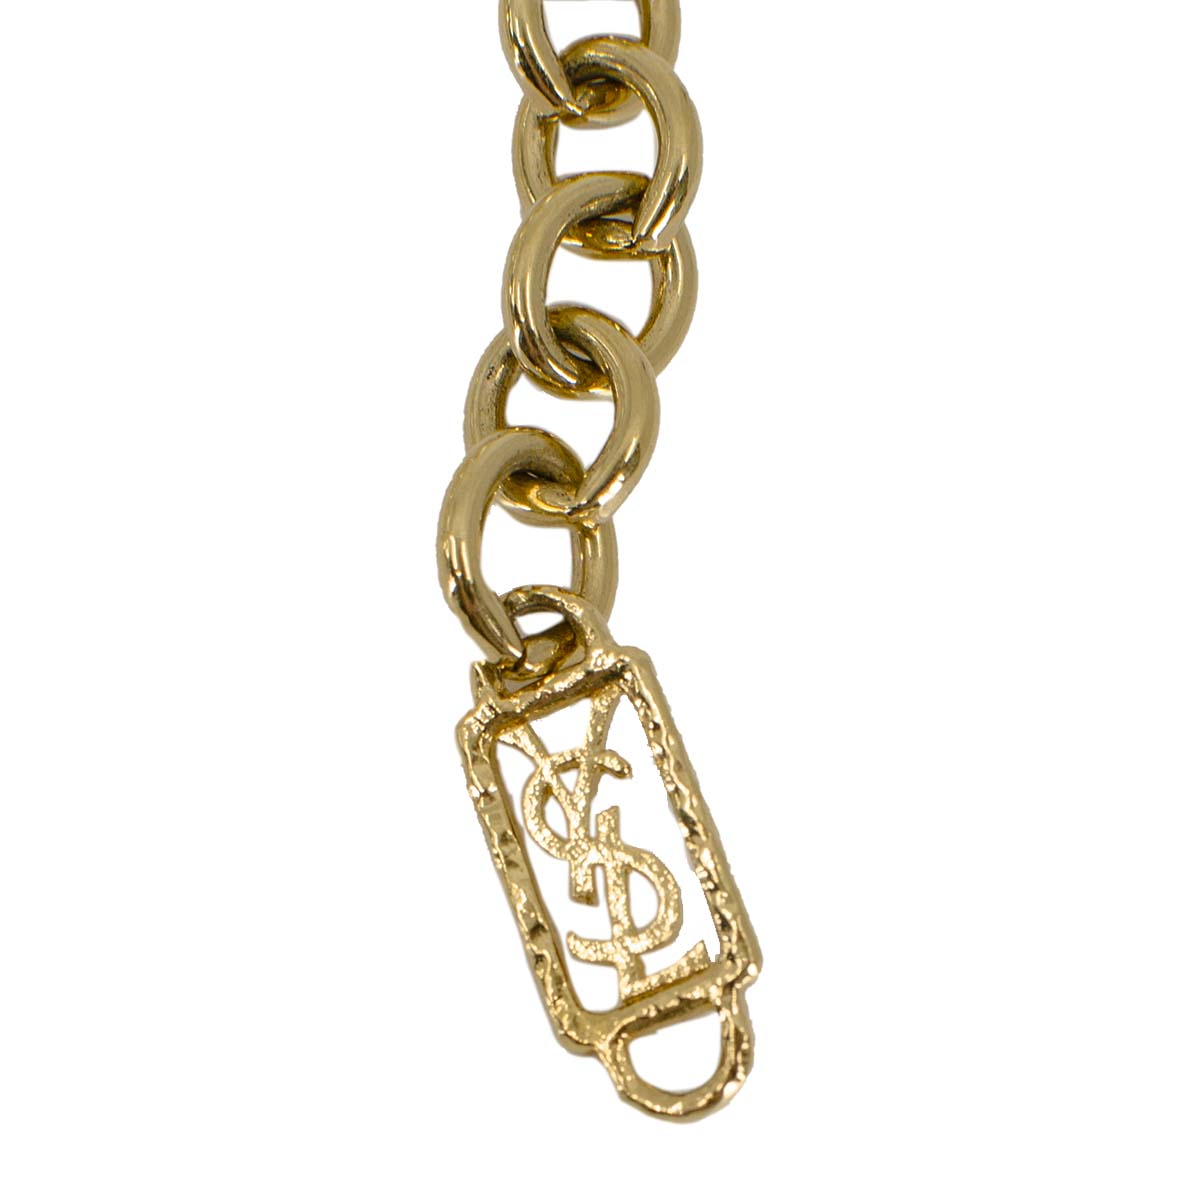 YSL jewelry tag, yves saint laurent